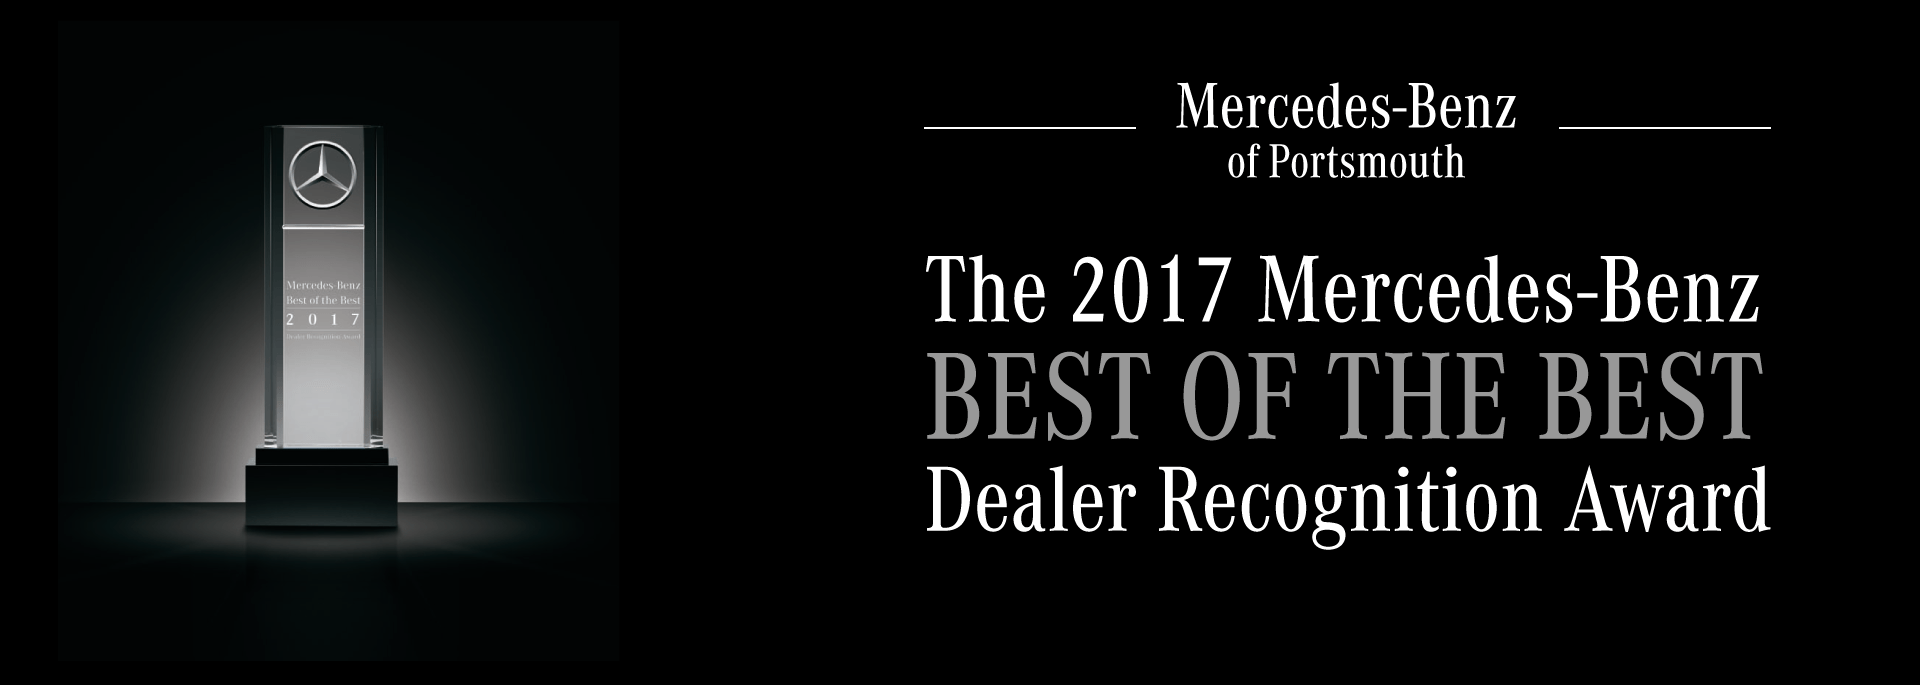 Mercedes benz of portsmouth luxury new and used car for Holloway motors portsmouth nh